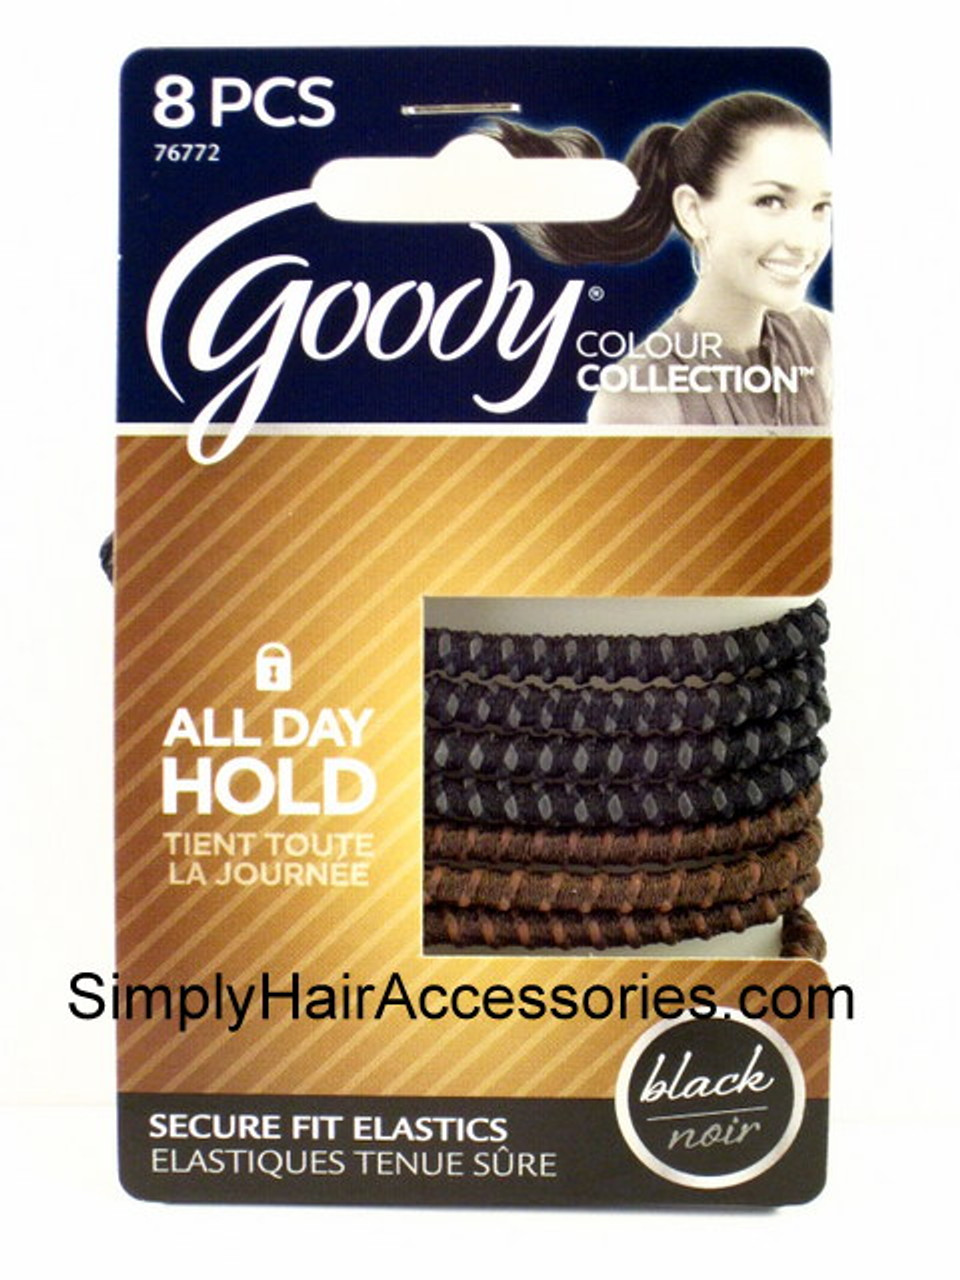 16 Goody StayPut Hair Tie Elastic Silicone Ponytailer No Slip Grip Slide Proof